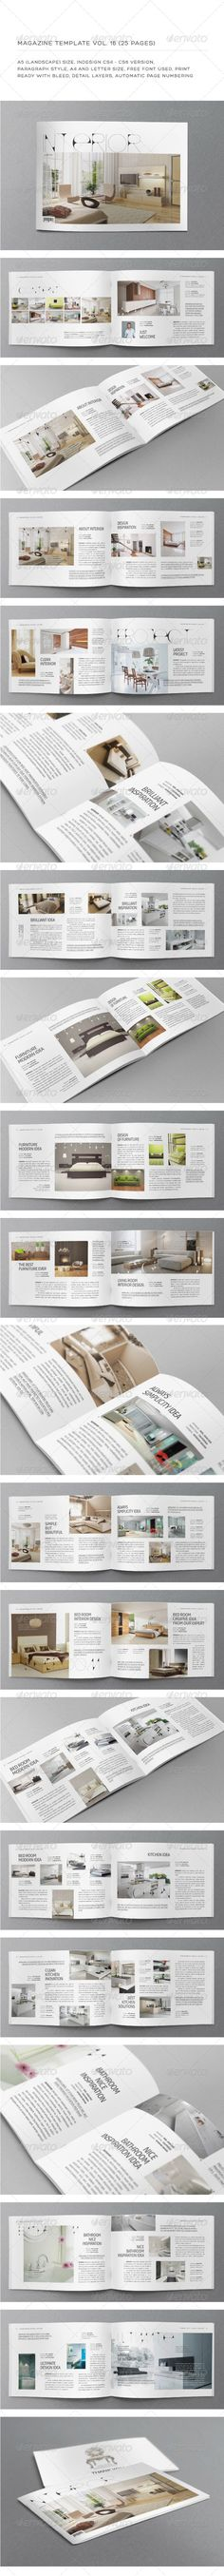 Indesign template vol 16 You can download this template here : http://graphicriver.net/item/a5-landscape-25-pages-mgz-vol-16/5319305?WT.oss_phrase=&WT.oss_rank=39&WT.z_author=Shafura&WT.ac=search_thumb